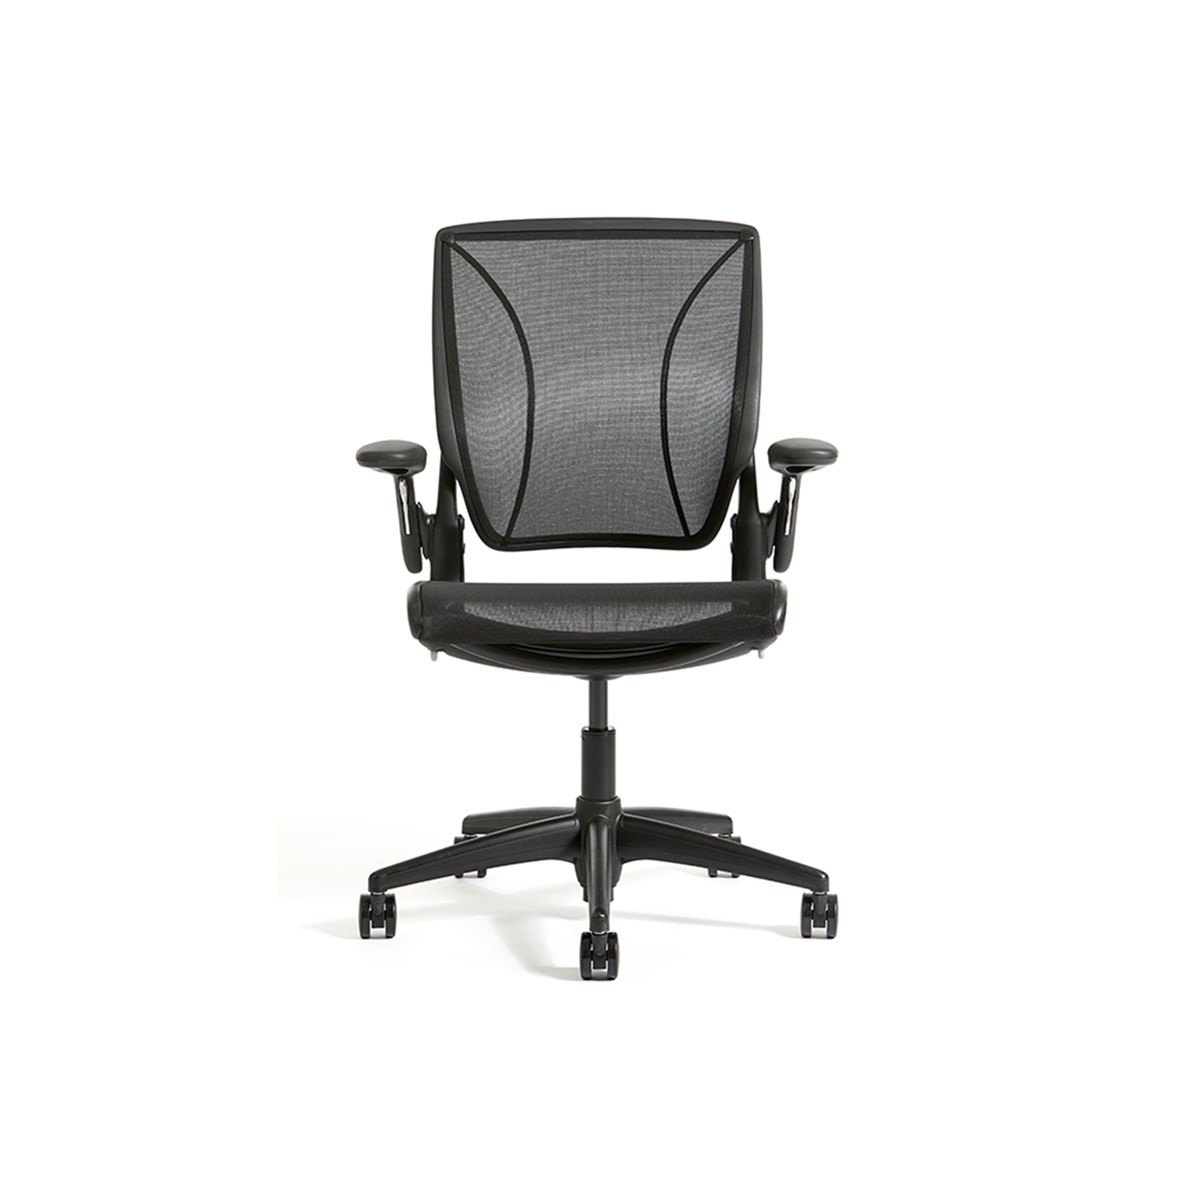 Humanscale-Niels-Diffrient-World-One-Task-Chair-Matisse-2